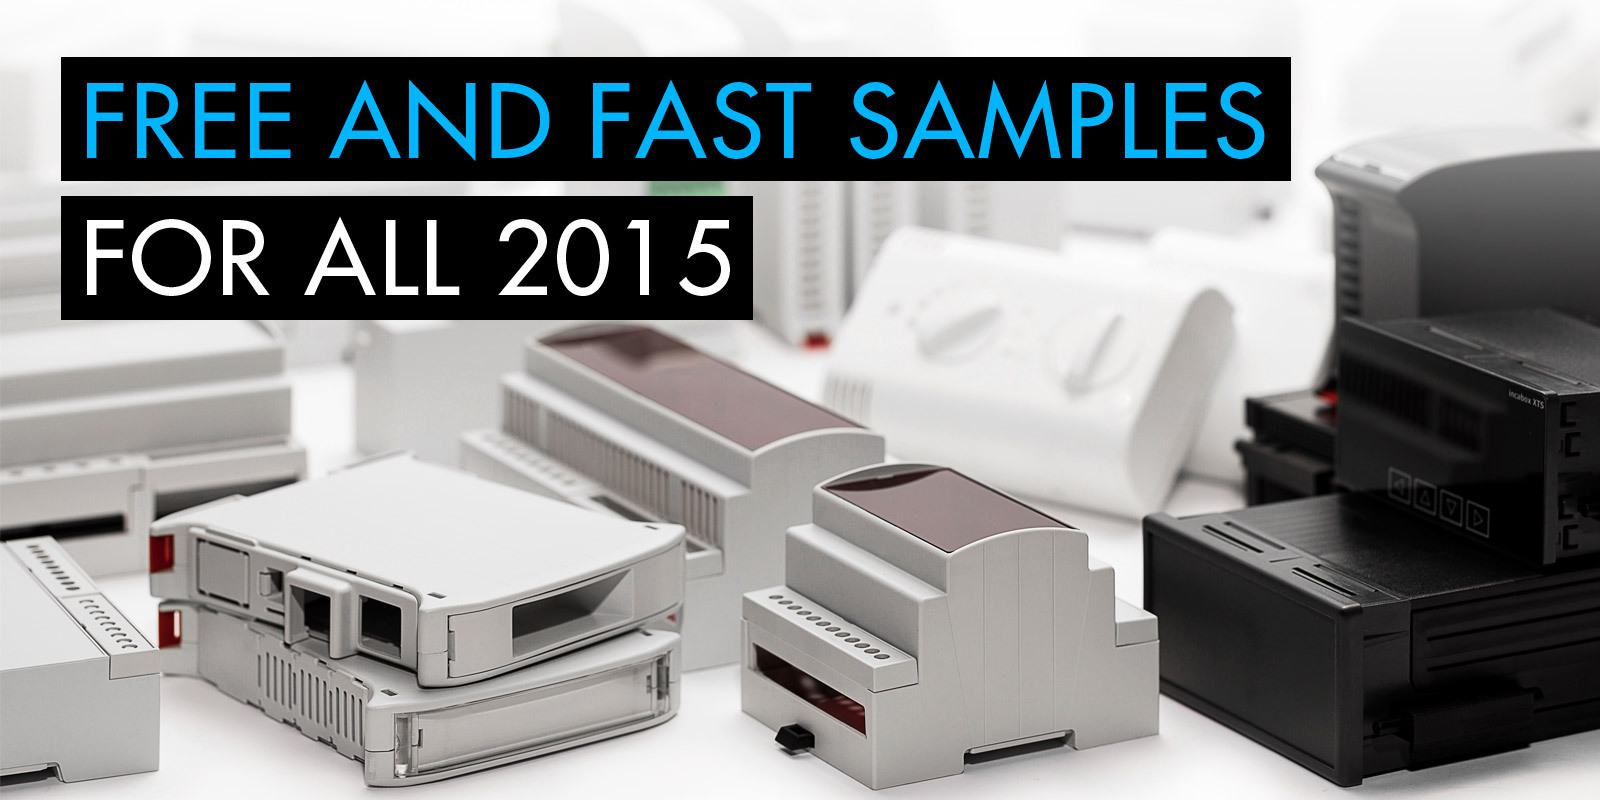 FREE and FAST samples for all 2015